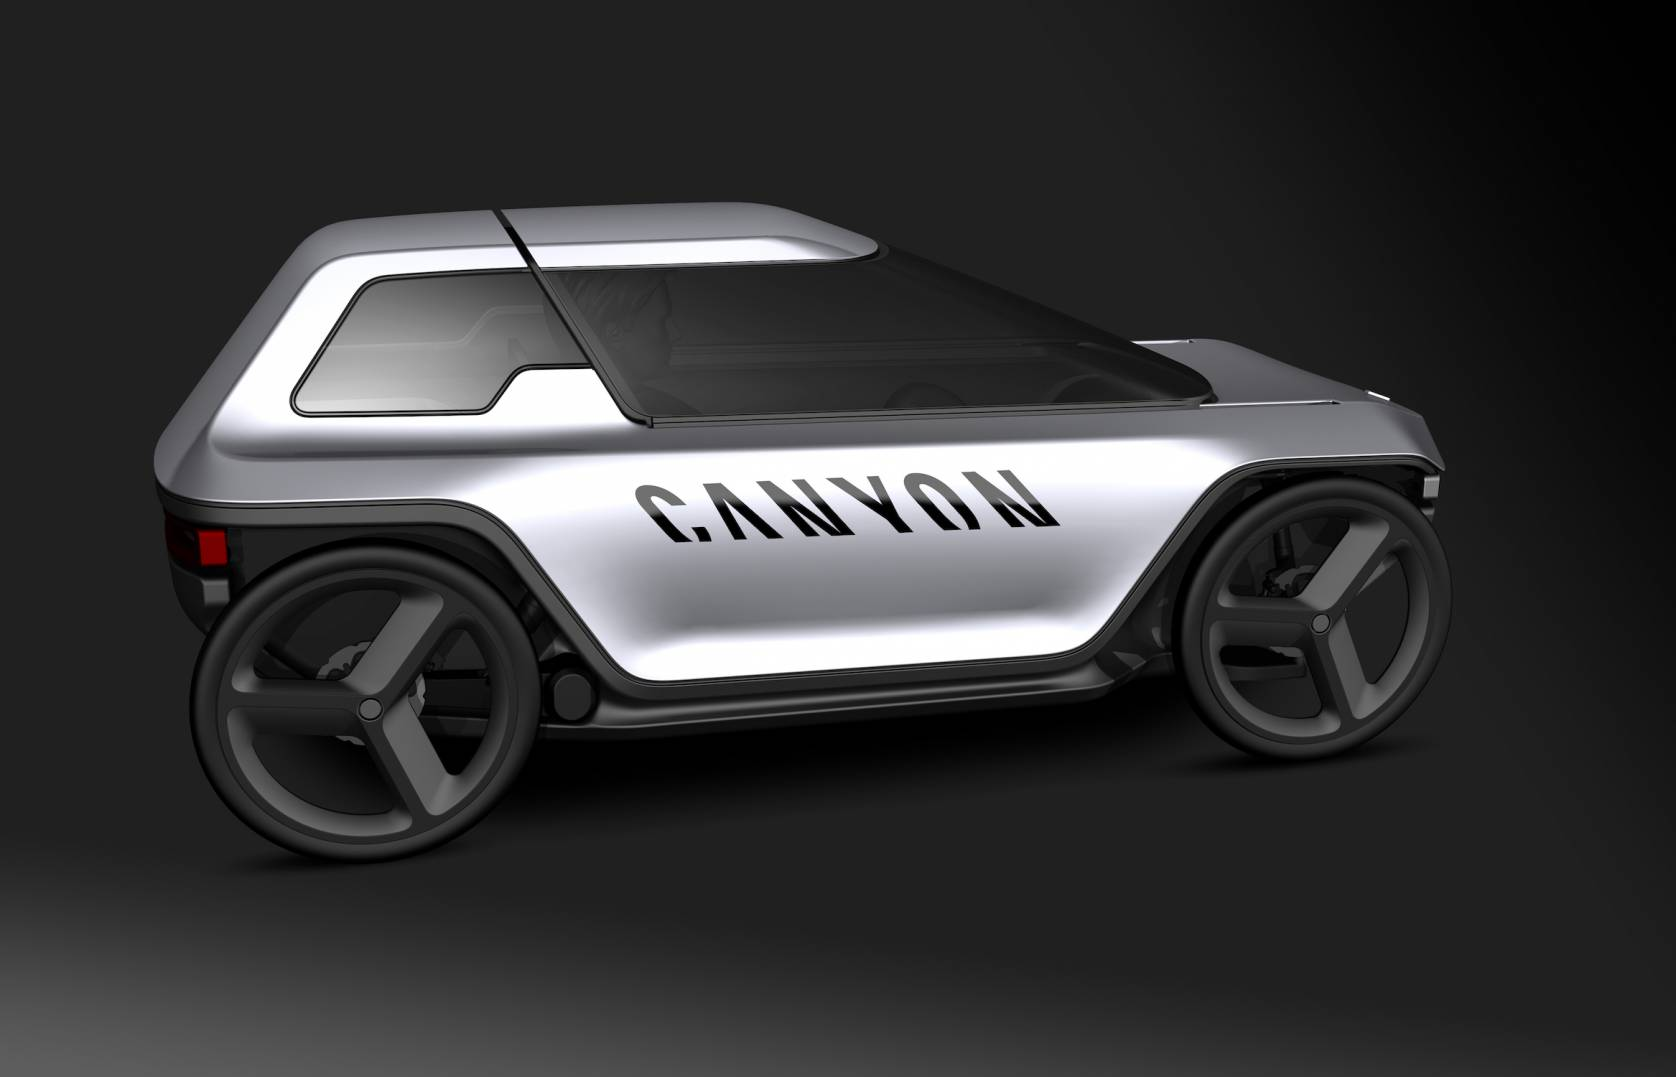 Canyon future concept